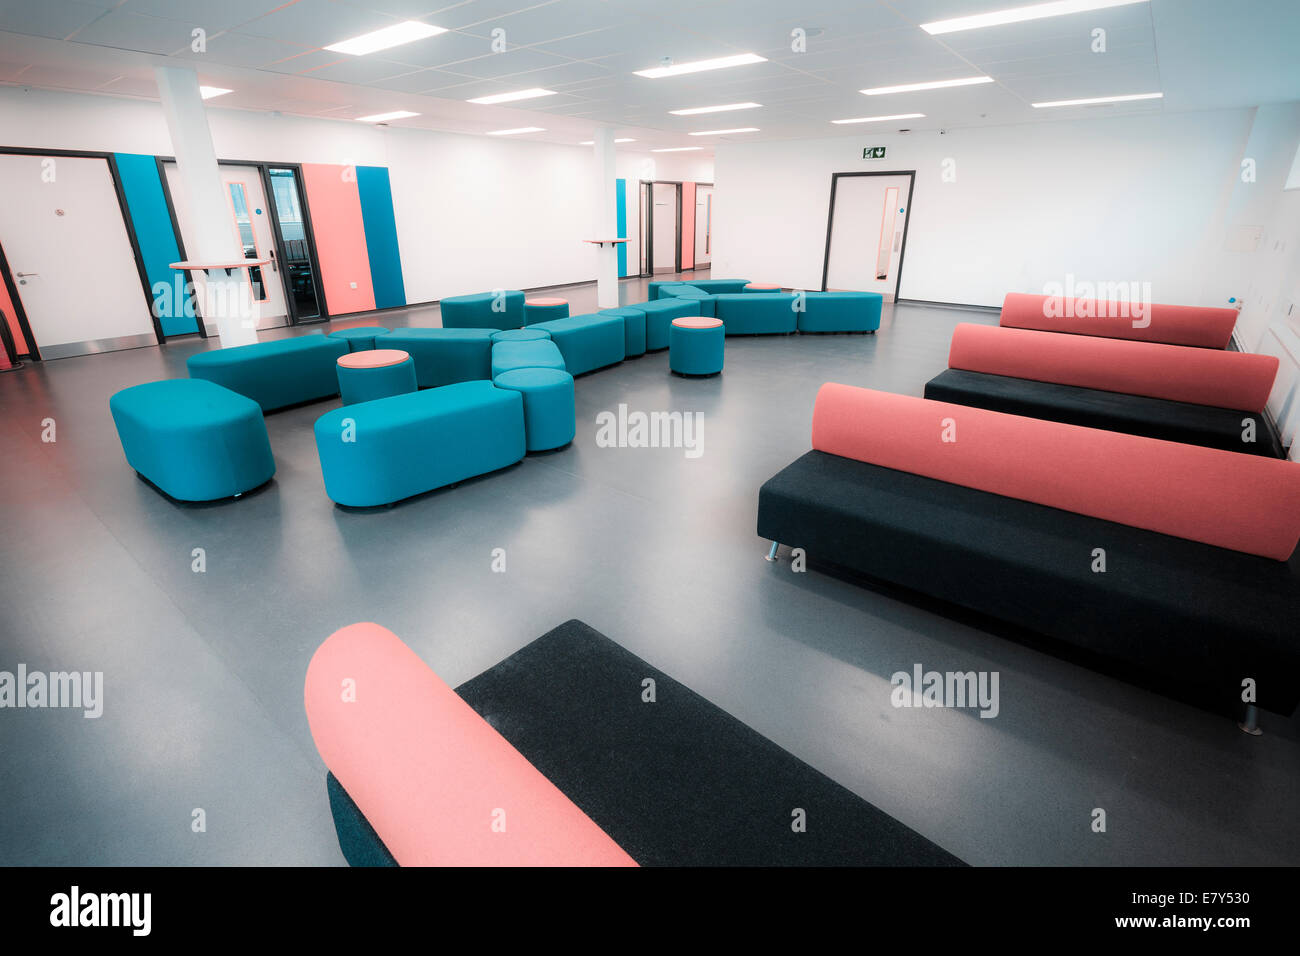 Soft furnishings in the reception area of Teddington Sixth Form College. - Stock Image